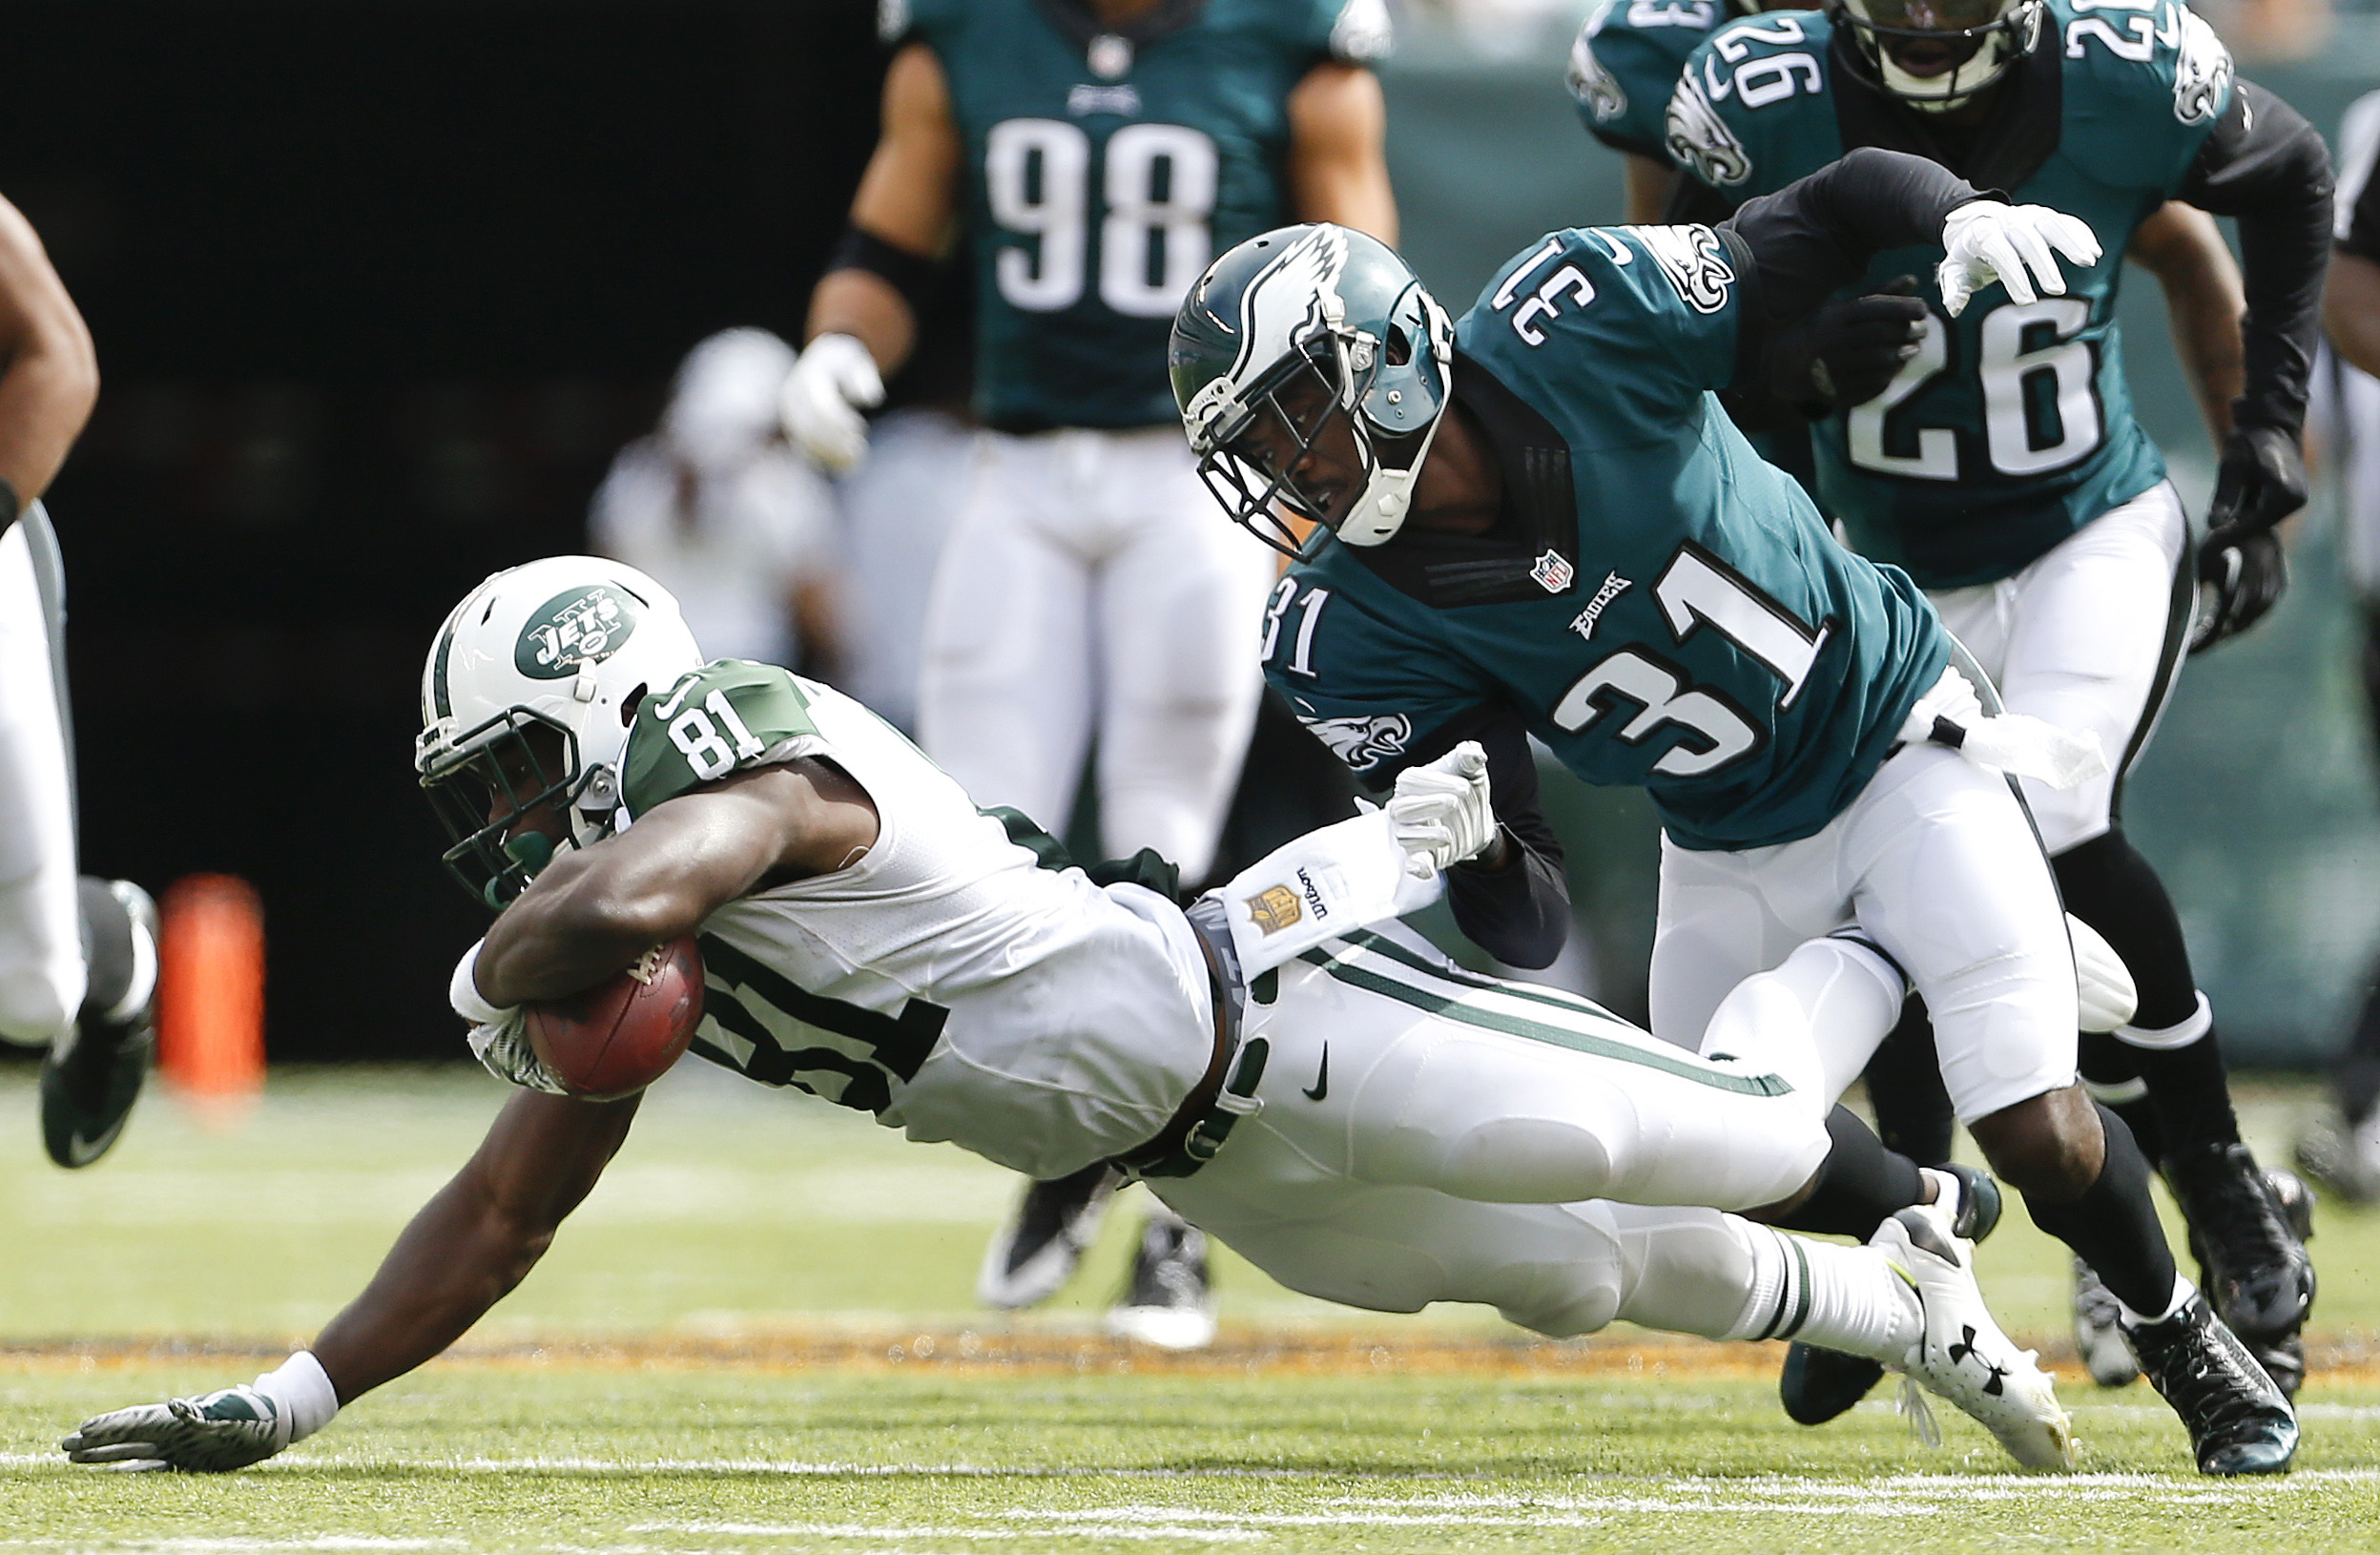 FILE - In this Sept. 27, 2015, file photo, New York Jets wide receiver Quincy Enunwa (81) makes a catch defended by Philadelphia Eagles cornerback Byron Maxwell (31) during the first half of an NFL football game in East Rutherford, N.J. New York Jets wide